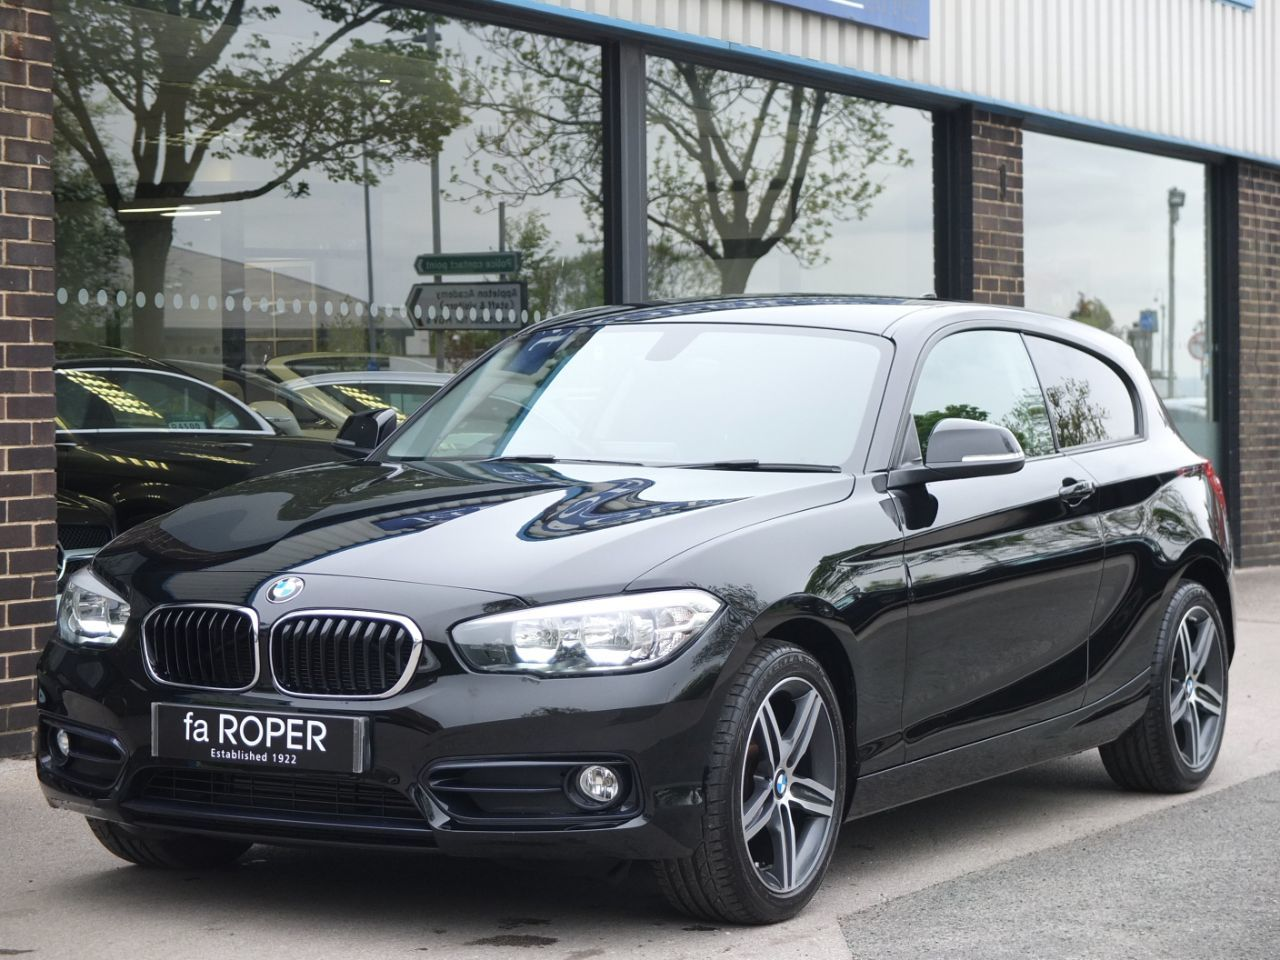 BMW 1 Series 1.5 116d Sport 3 door (Navigation) Hatchback Diesel Jet BlackBMW 1 Series 1.5 116d Sport 3 door (Navigation) Hatchback Diesel Jet Black at fa Roper Ltd Bradford